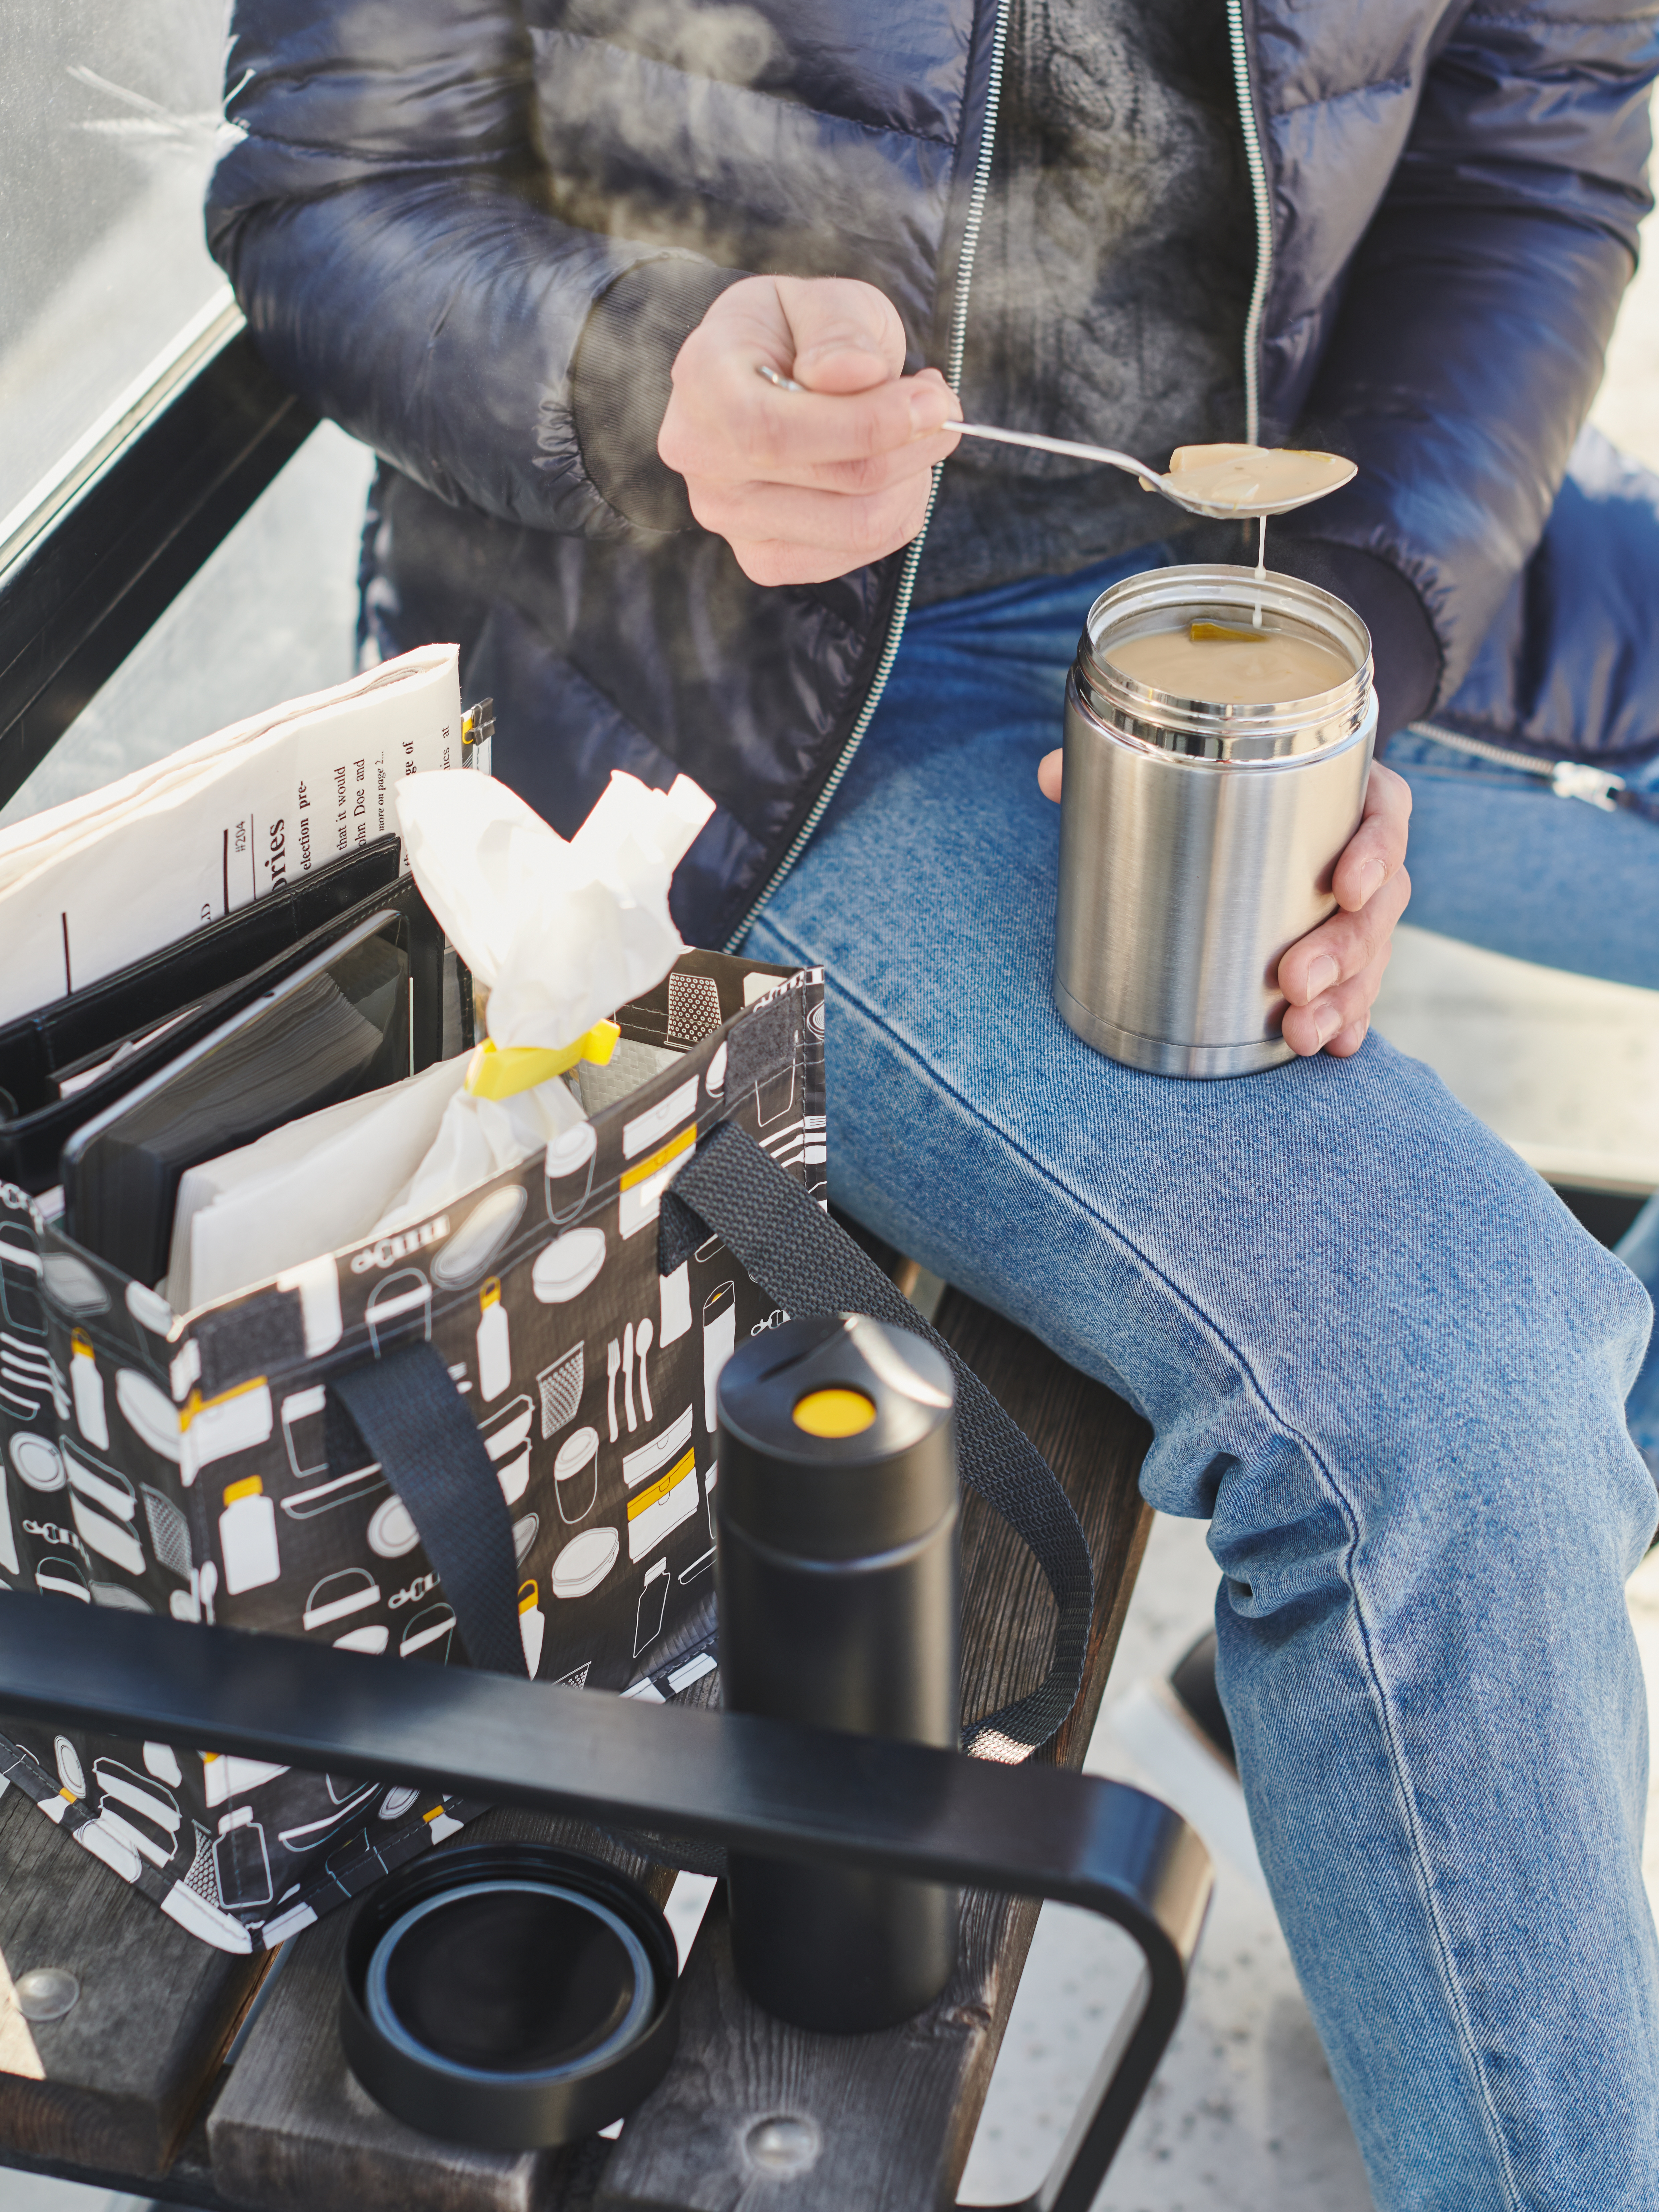 A man sitting by a FLADDRIG lunch bag on a public bench, eating with a spoon out of an EFTERFRÅGAD food vacuum flask.